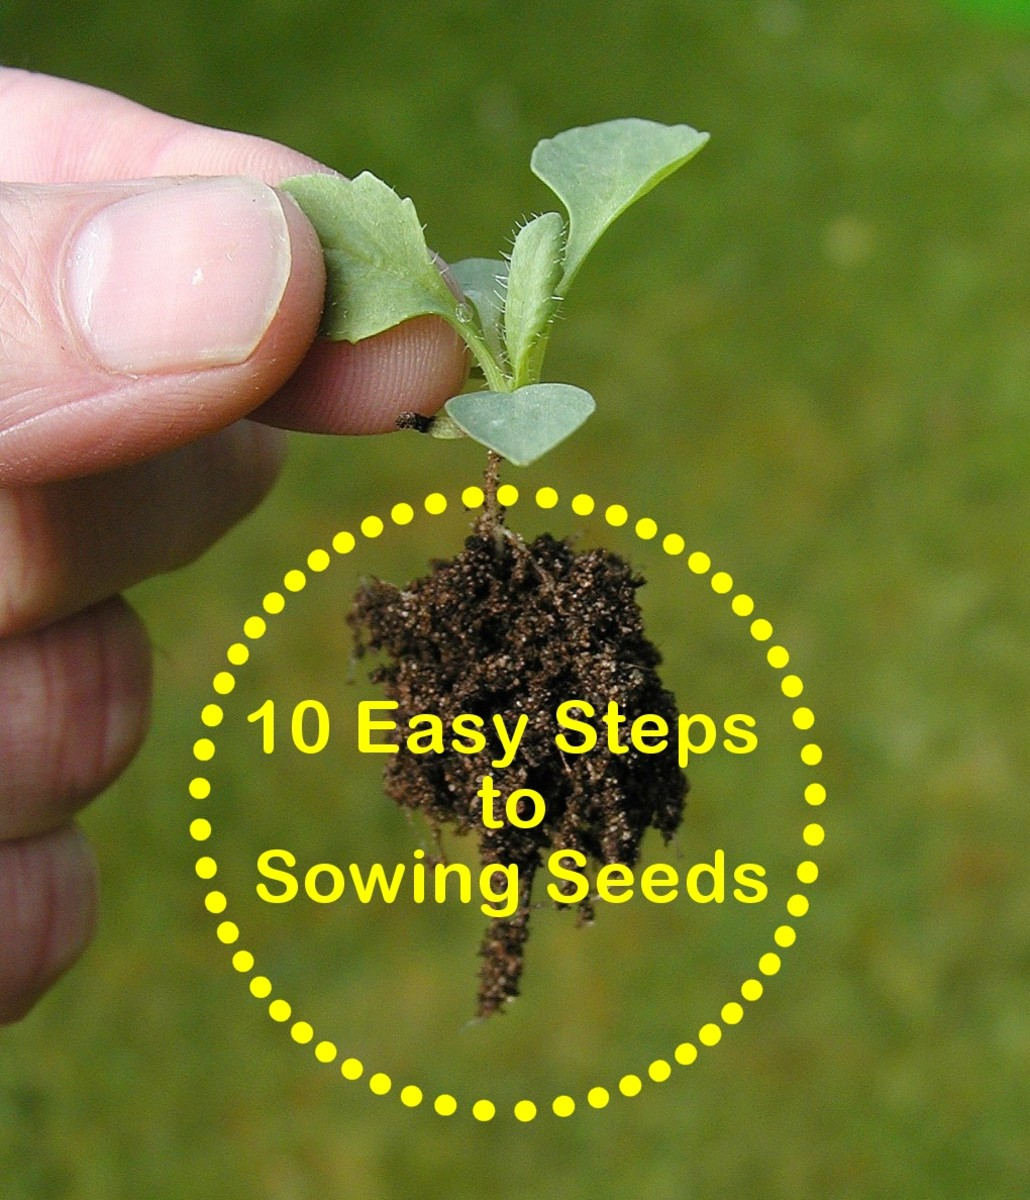 Gardening for Beginners: 10 Easy Steps to Sowing Seeds